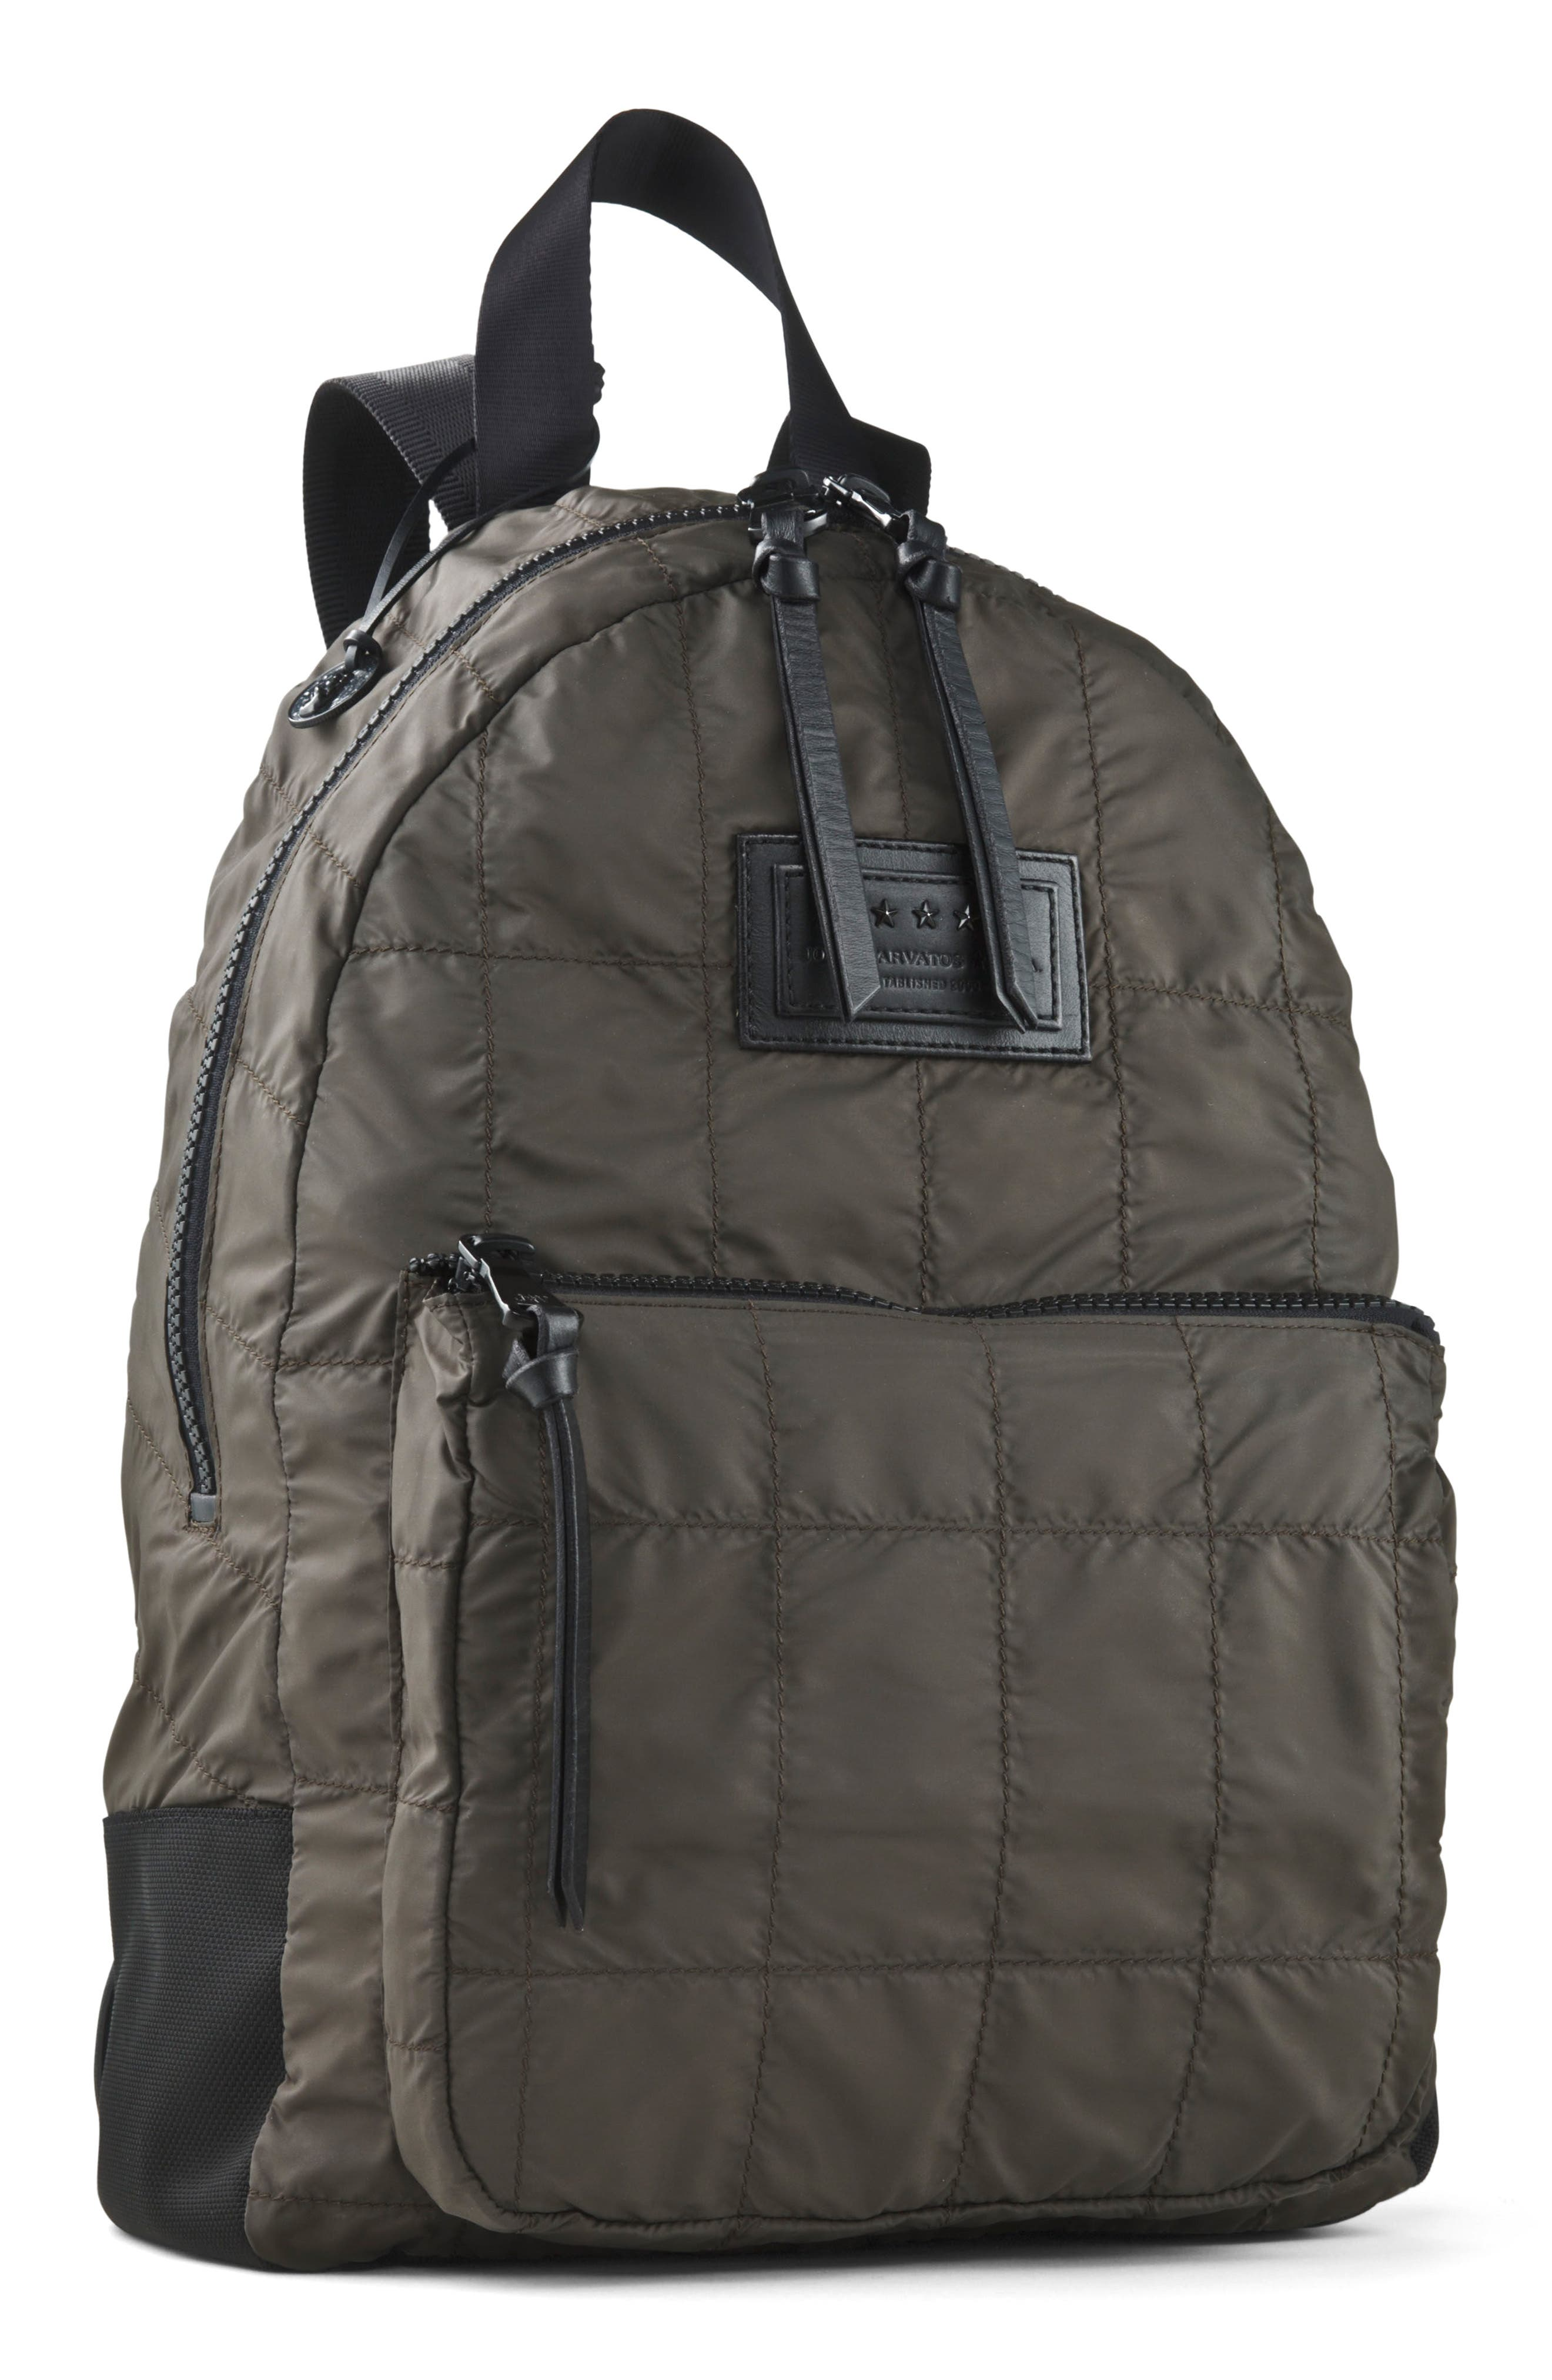 Quilted Nylon Backpack,                         Main,                         color, Army Green